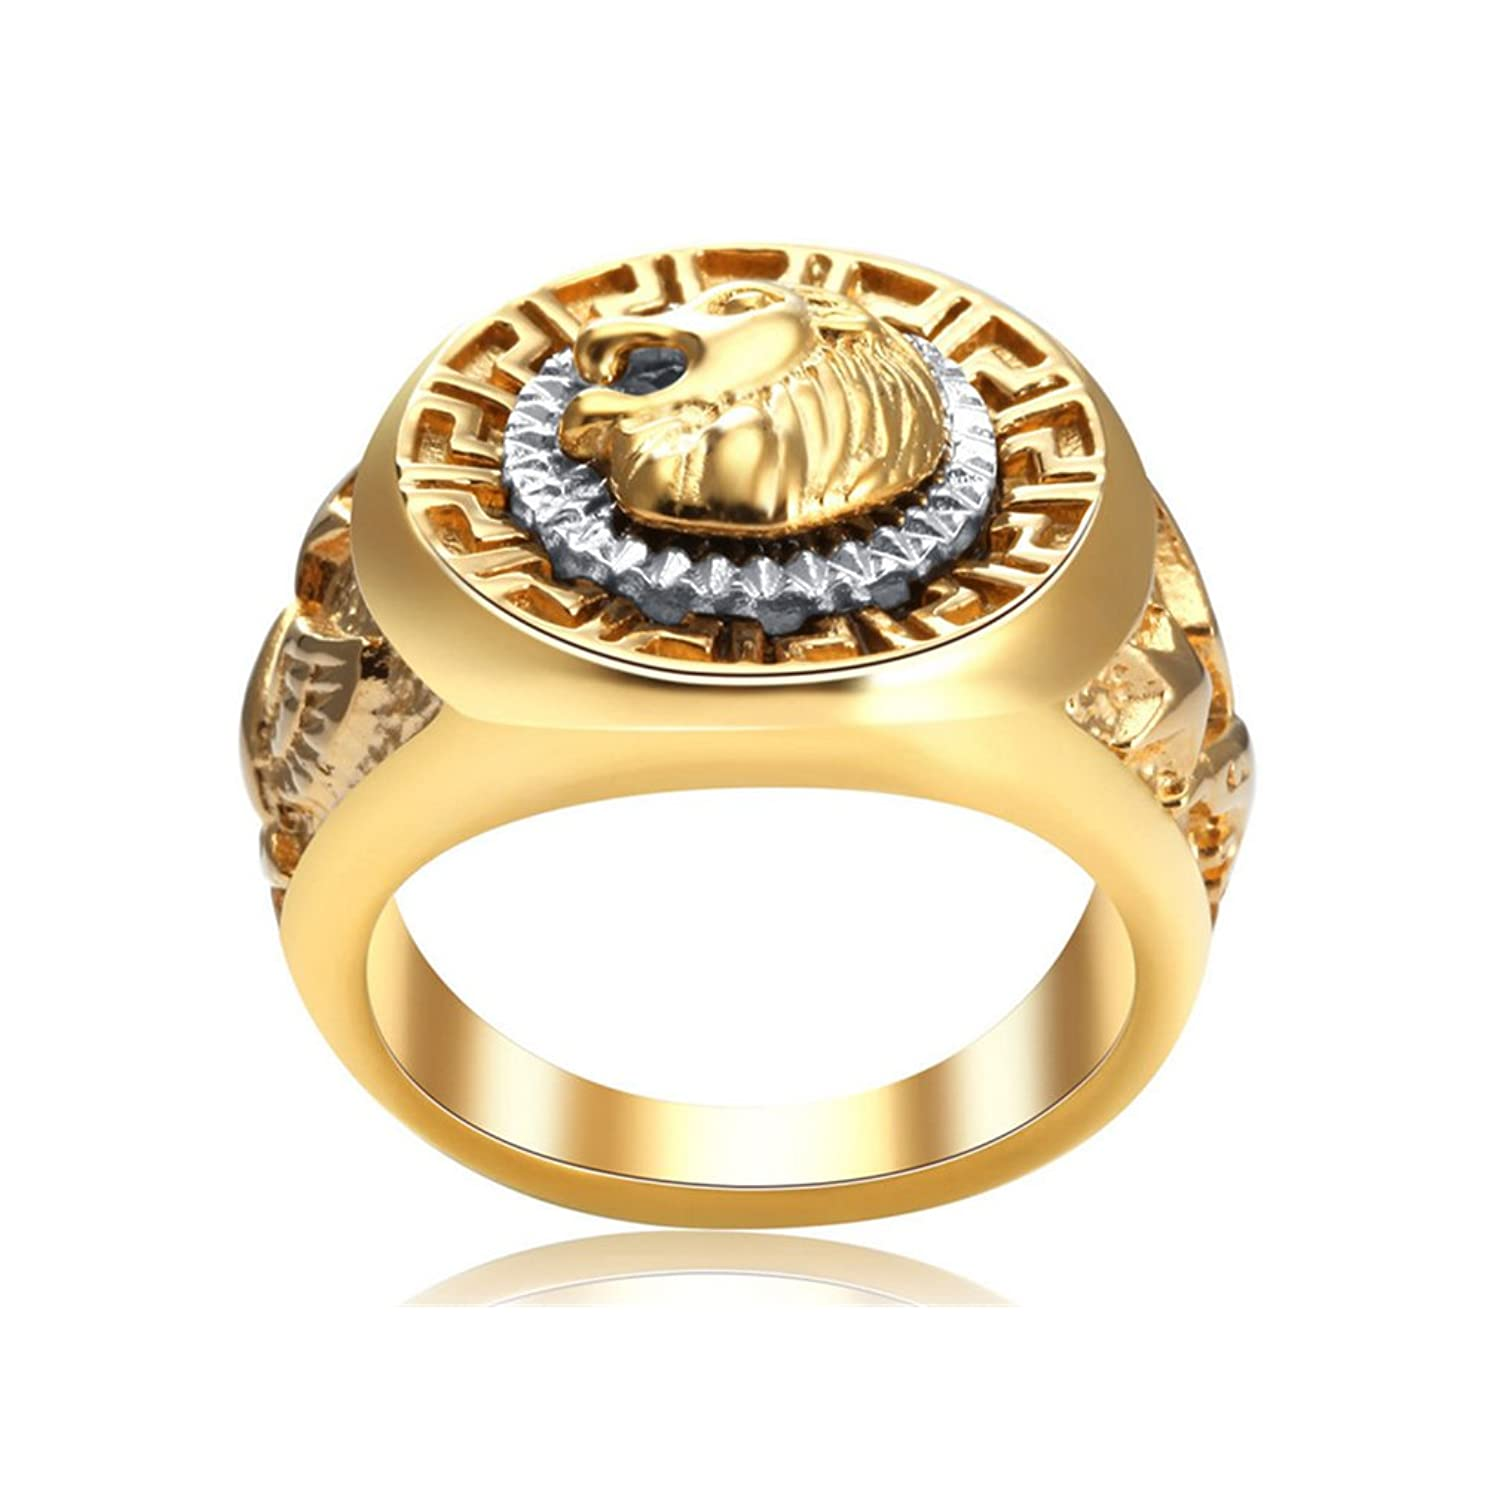 j men s horse il mens gold jewellery yellow fullxfull r diamond shoe for jewels product ring